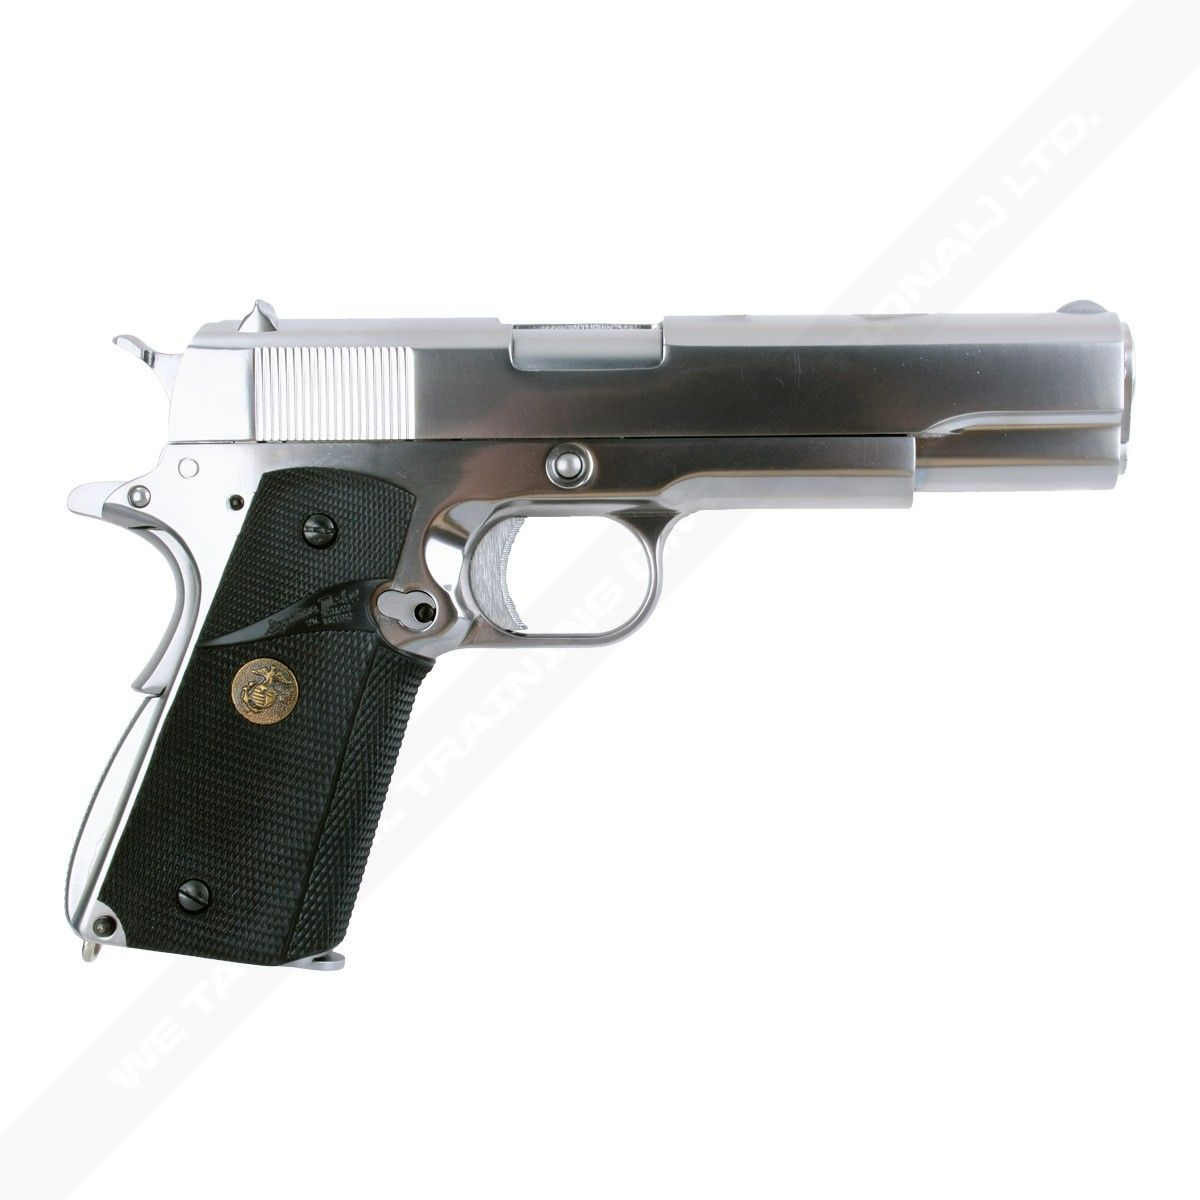 WE COLT 1911 A1 SILVER PRO GRIPS AIRSOFT TABANCA